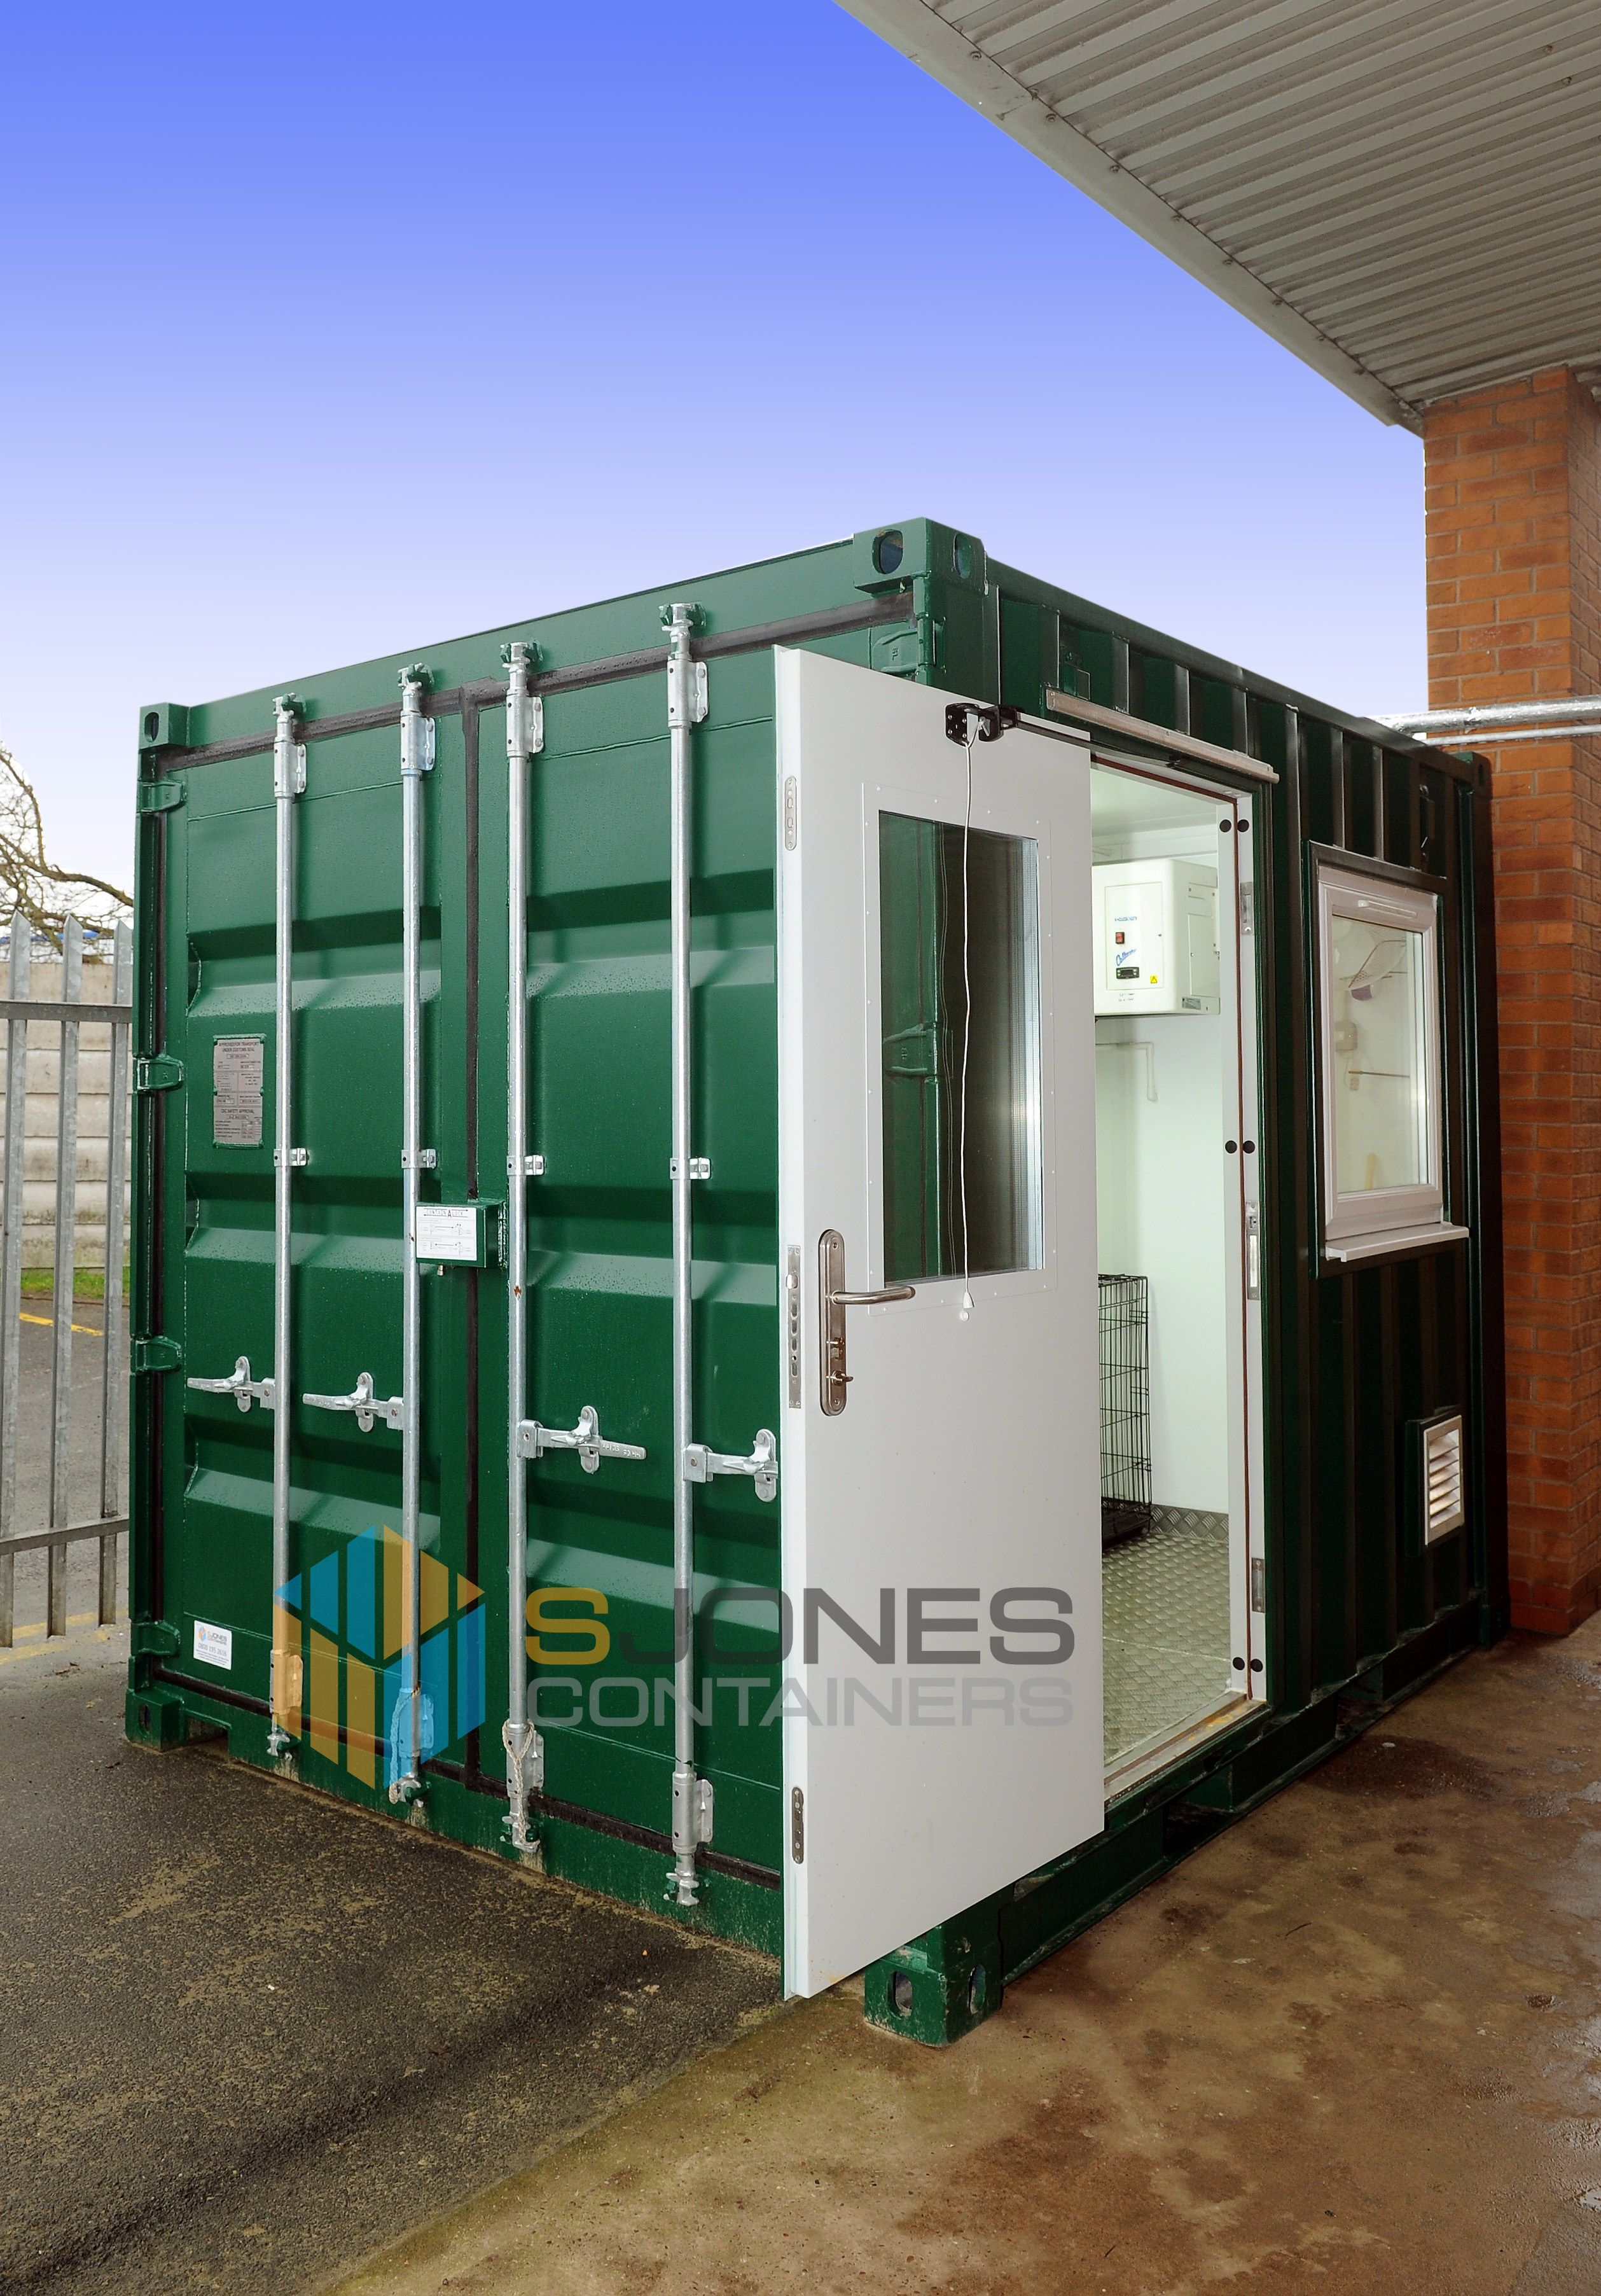 Gracious Shipping Container Converted Into A To Down Hot Shipping Container Converted Into A To Down How To Down A Room Without Air Conditioning How To Down A Room Ly houzz 01 How To Cool Down A Room